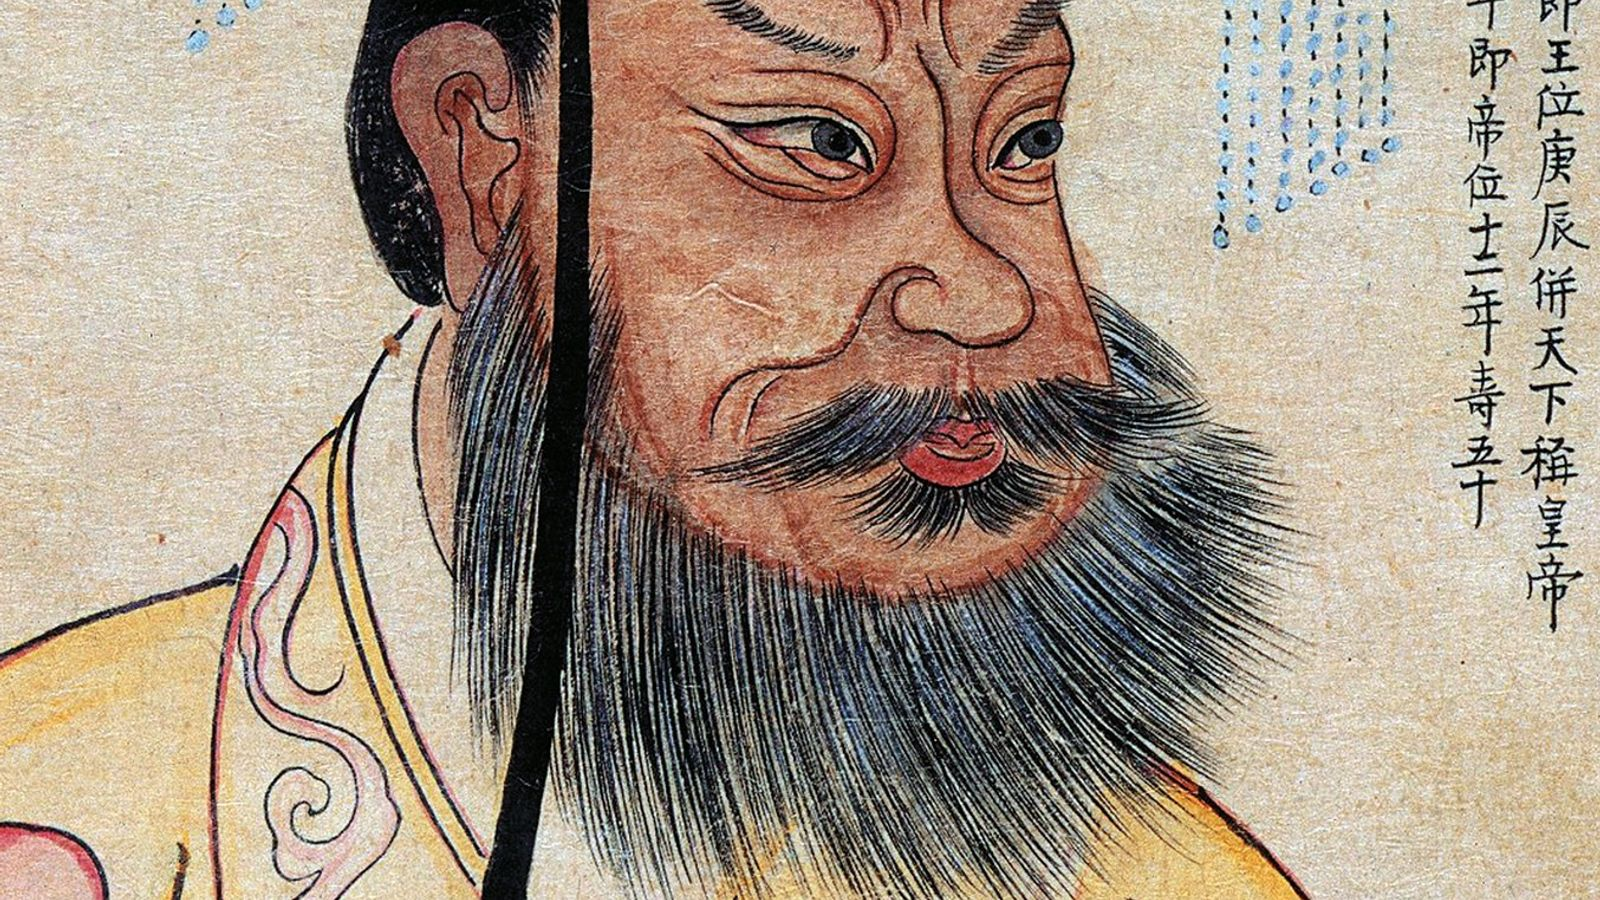 Qin Shi Huangdi forged an empire and left a larger-than-life legacy with the beginnings of the ...